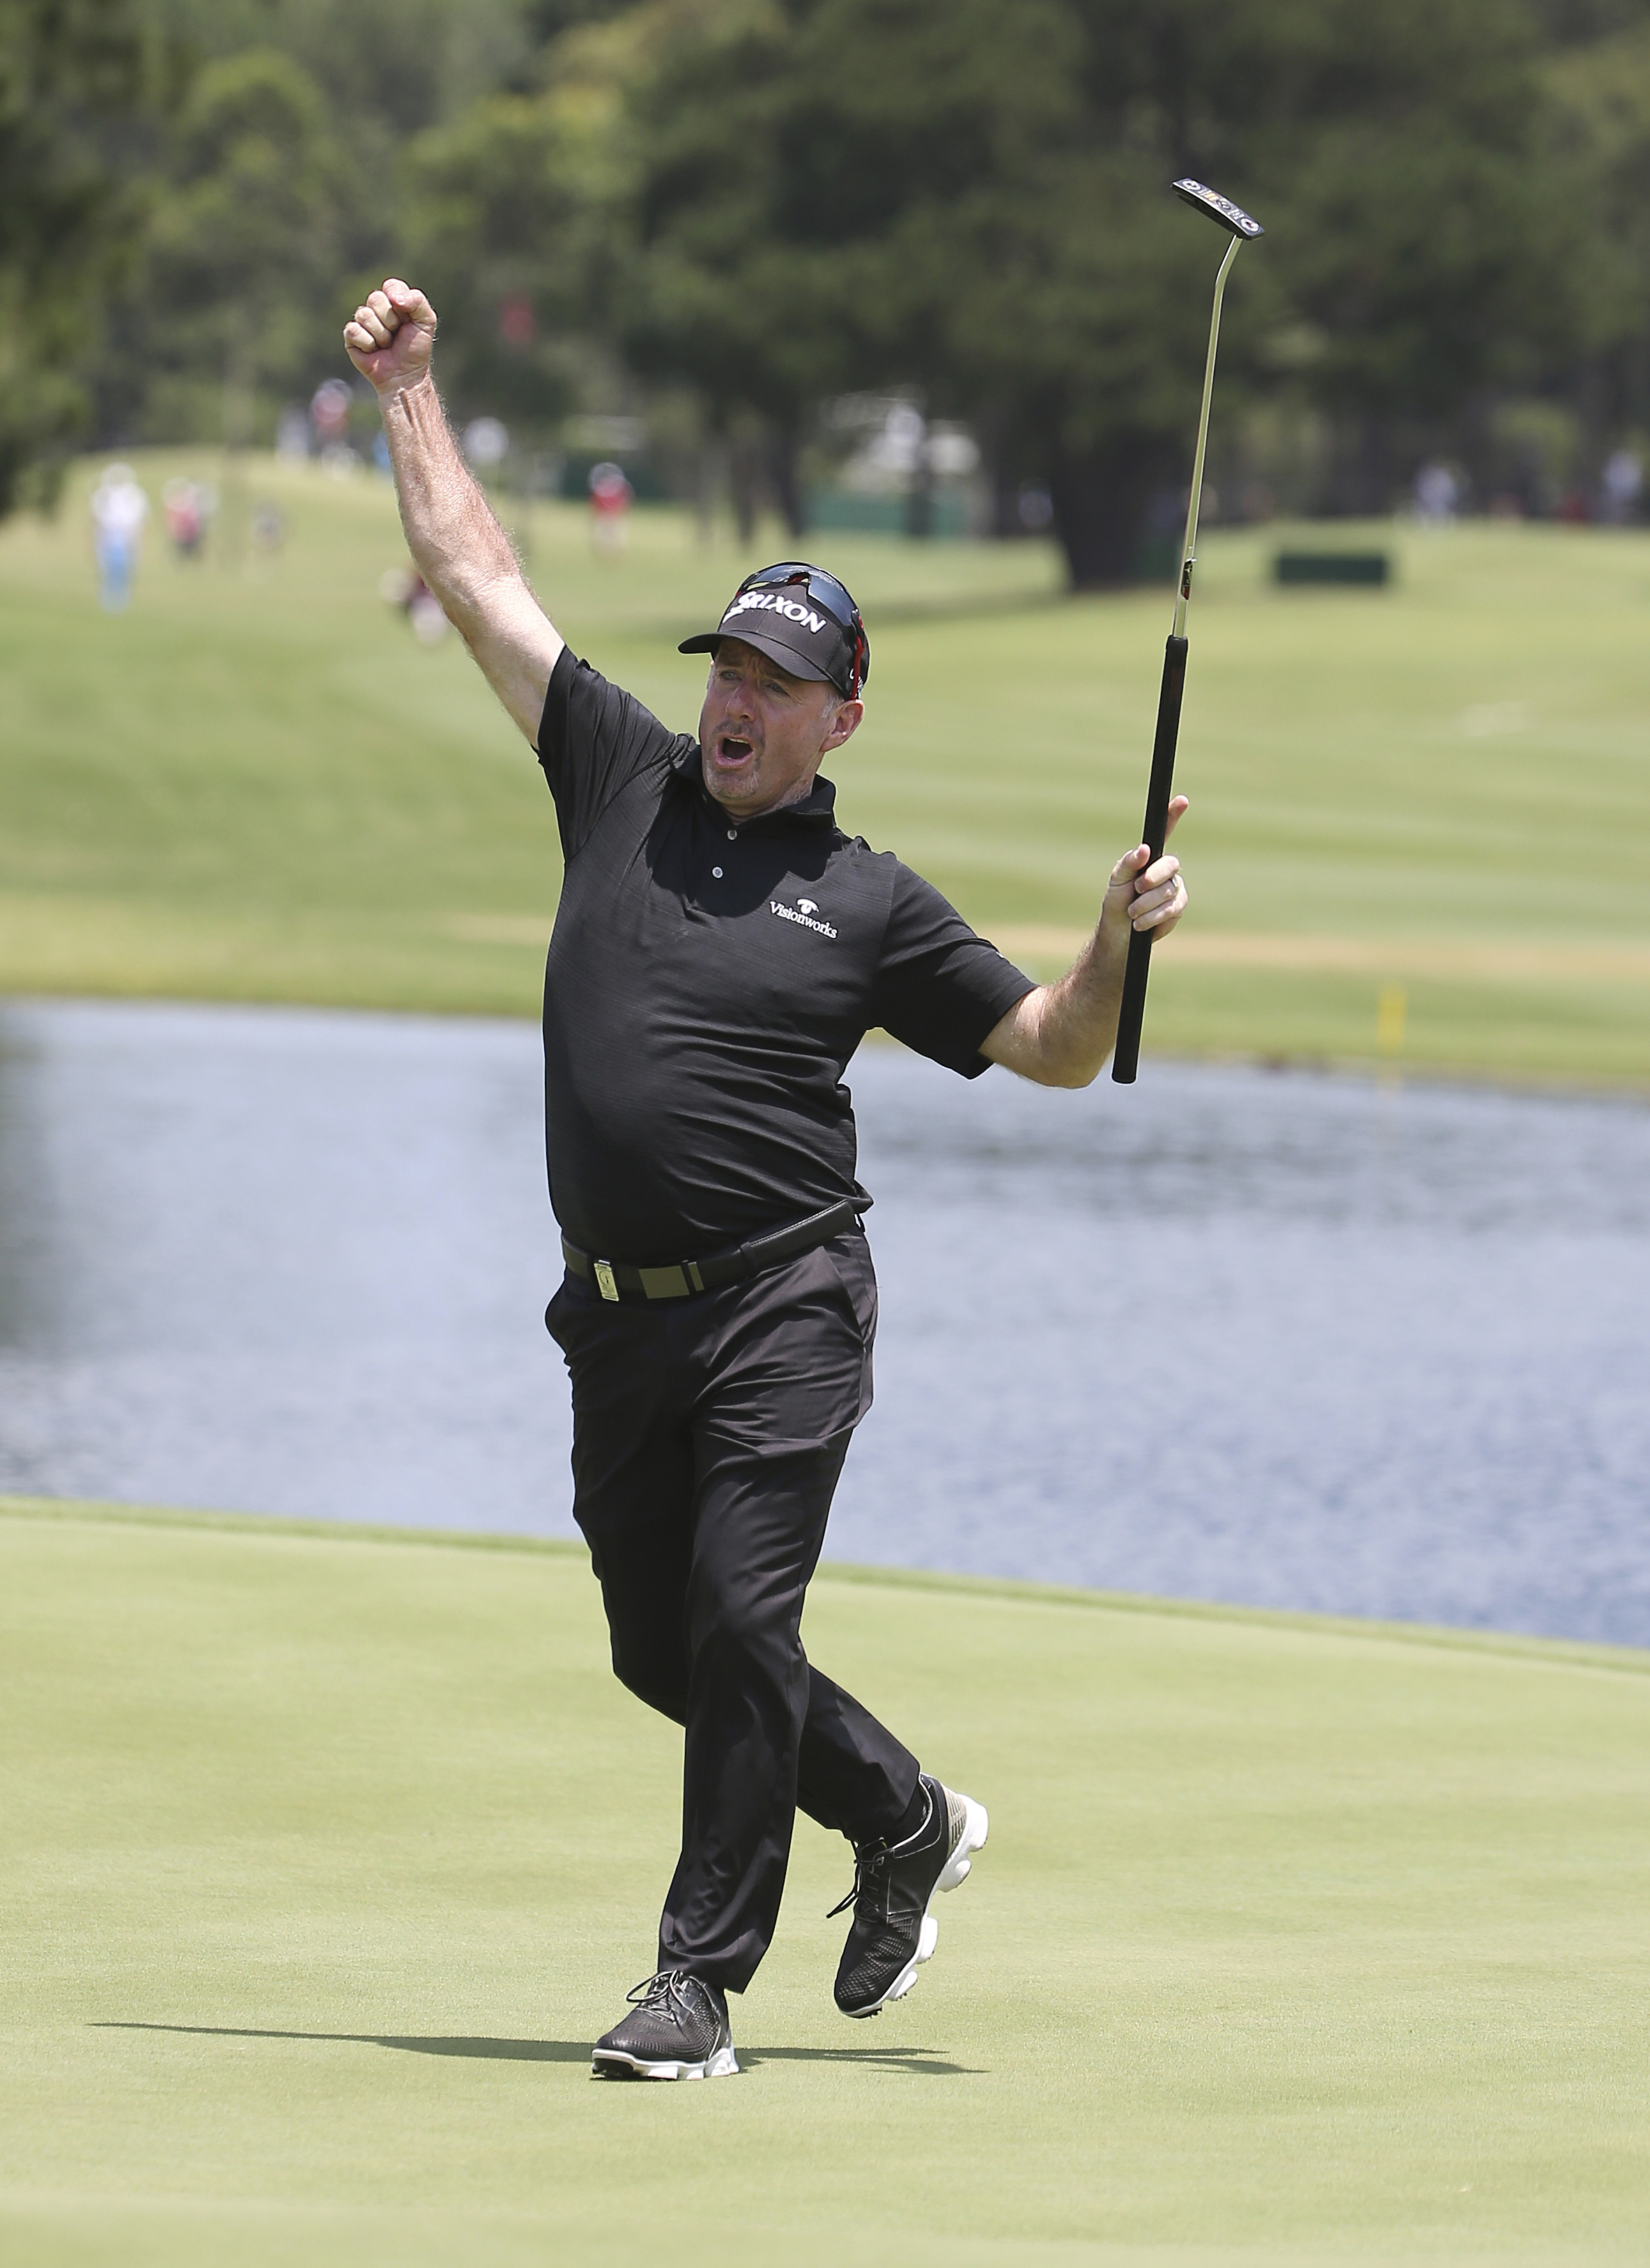 Rod Pampling of Australia pumps his fist as he celebrates an eagle on the 18th green on the final day of the Australian Open in Sydney Sunday, Nov. 29, 2015.